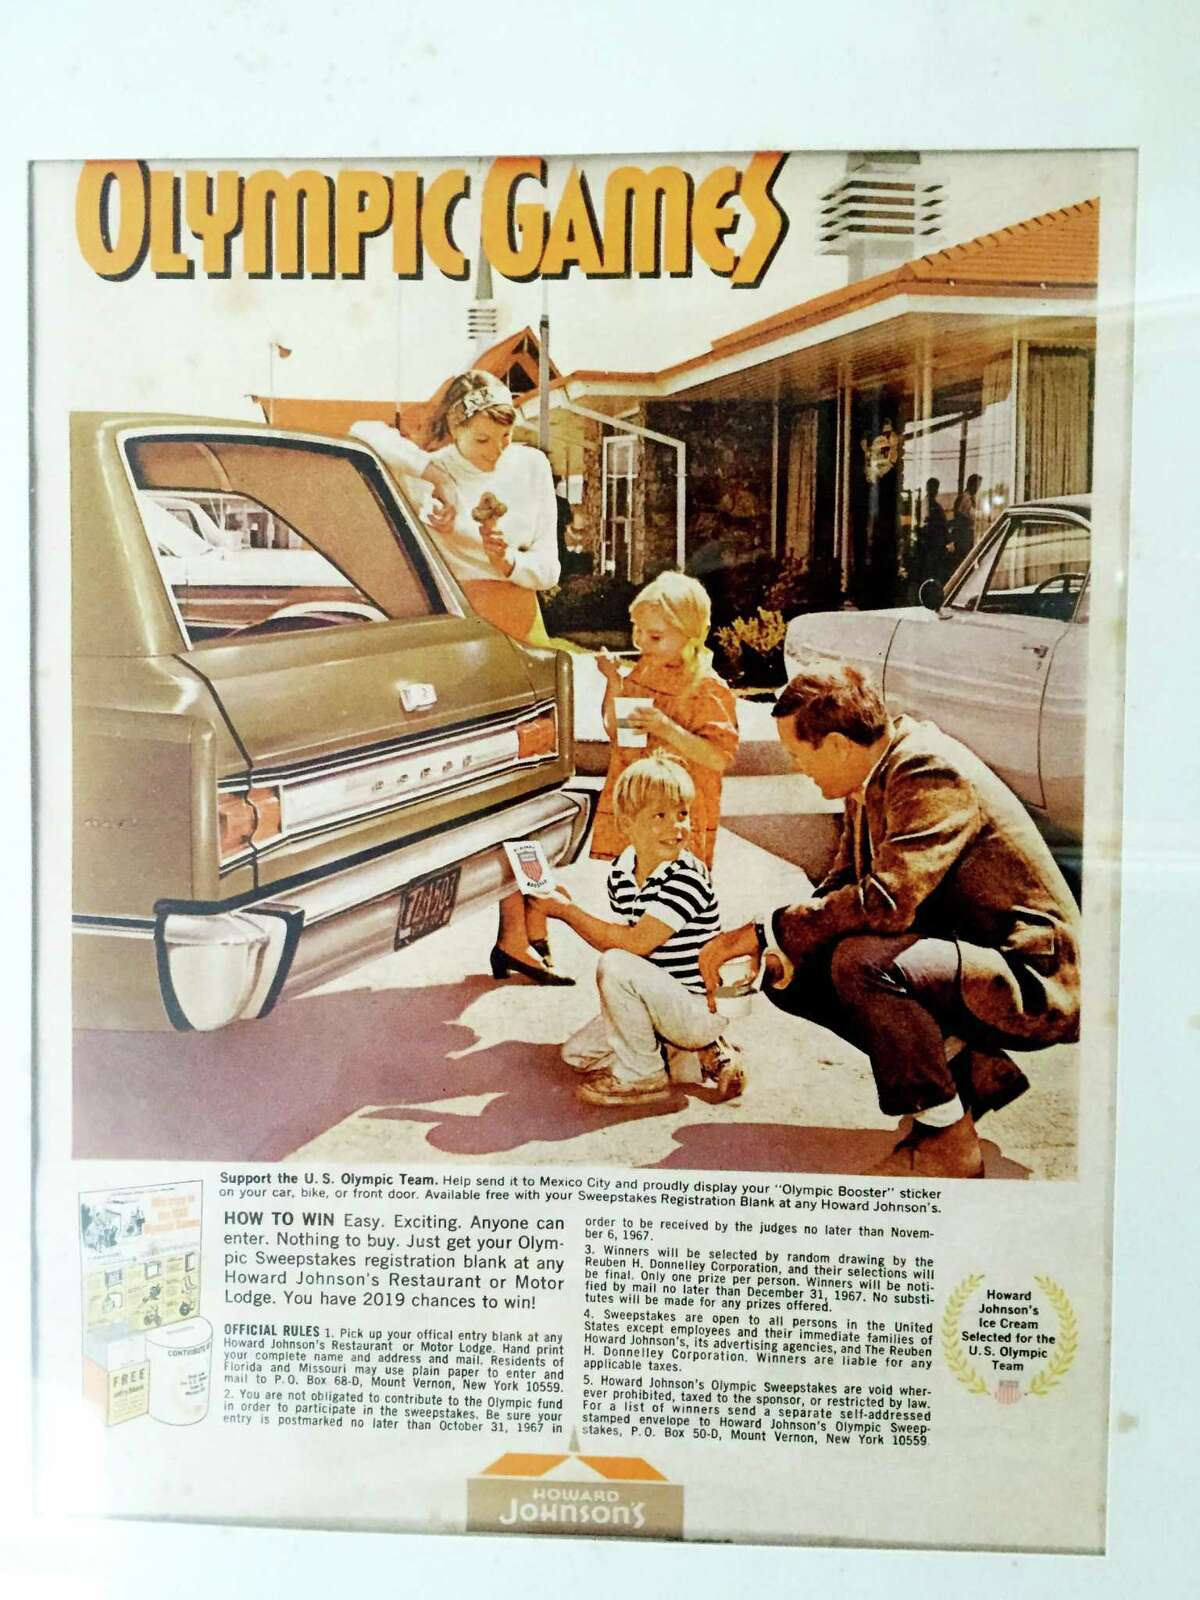 New Canaan's new Administrative Officer Tucker Murphy was in TV commercials as a child. A public relations agent for a model who lived next door to her was looking for two children for a Howard Johnson's Olympics promotion. She and her brother were chosen. The picture was contributed October 2020.